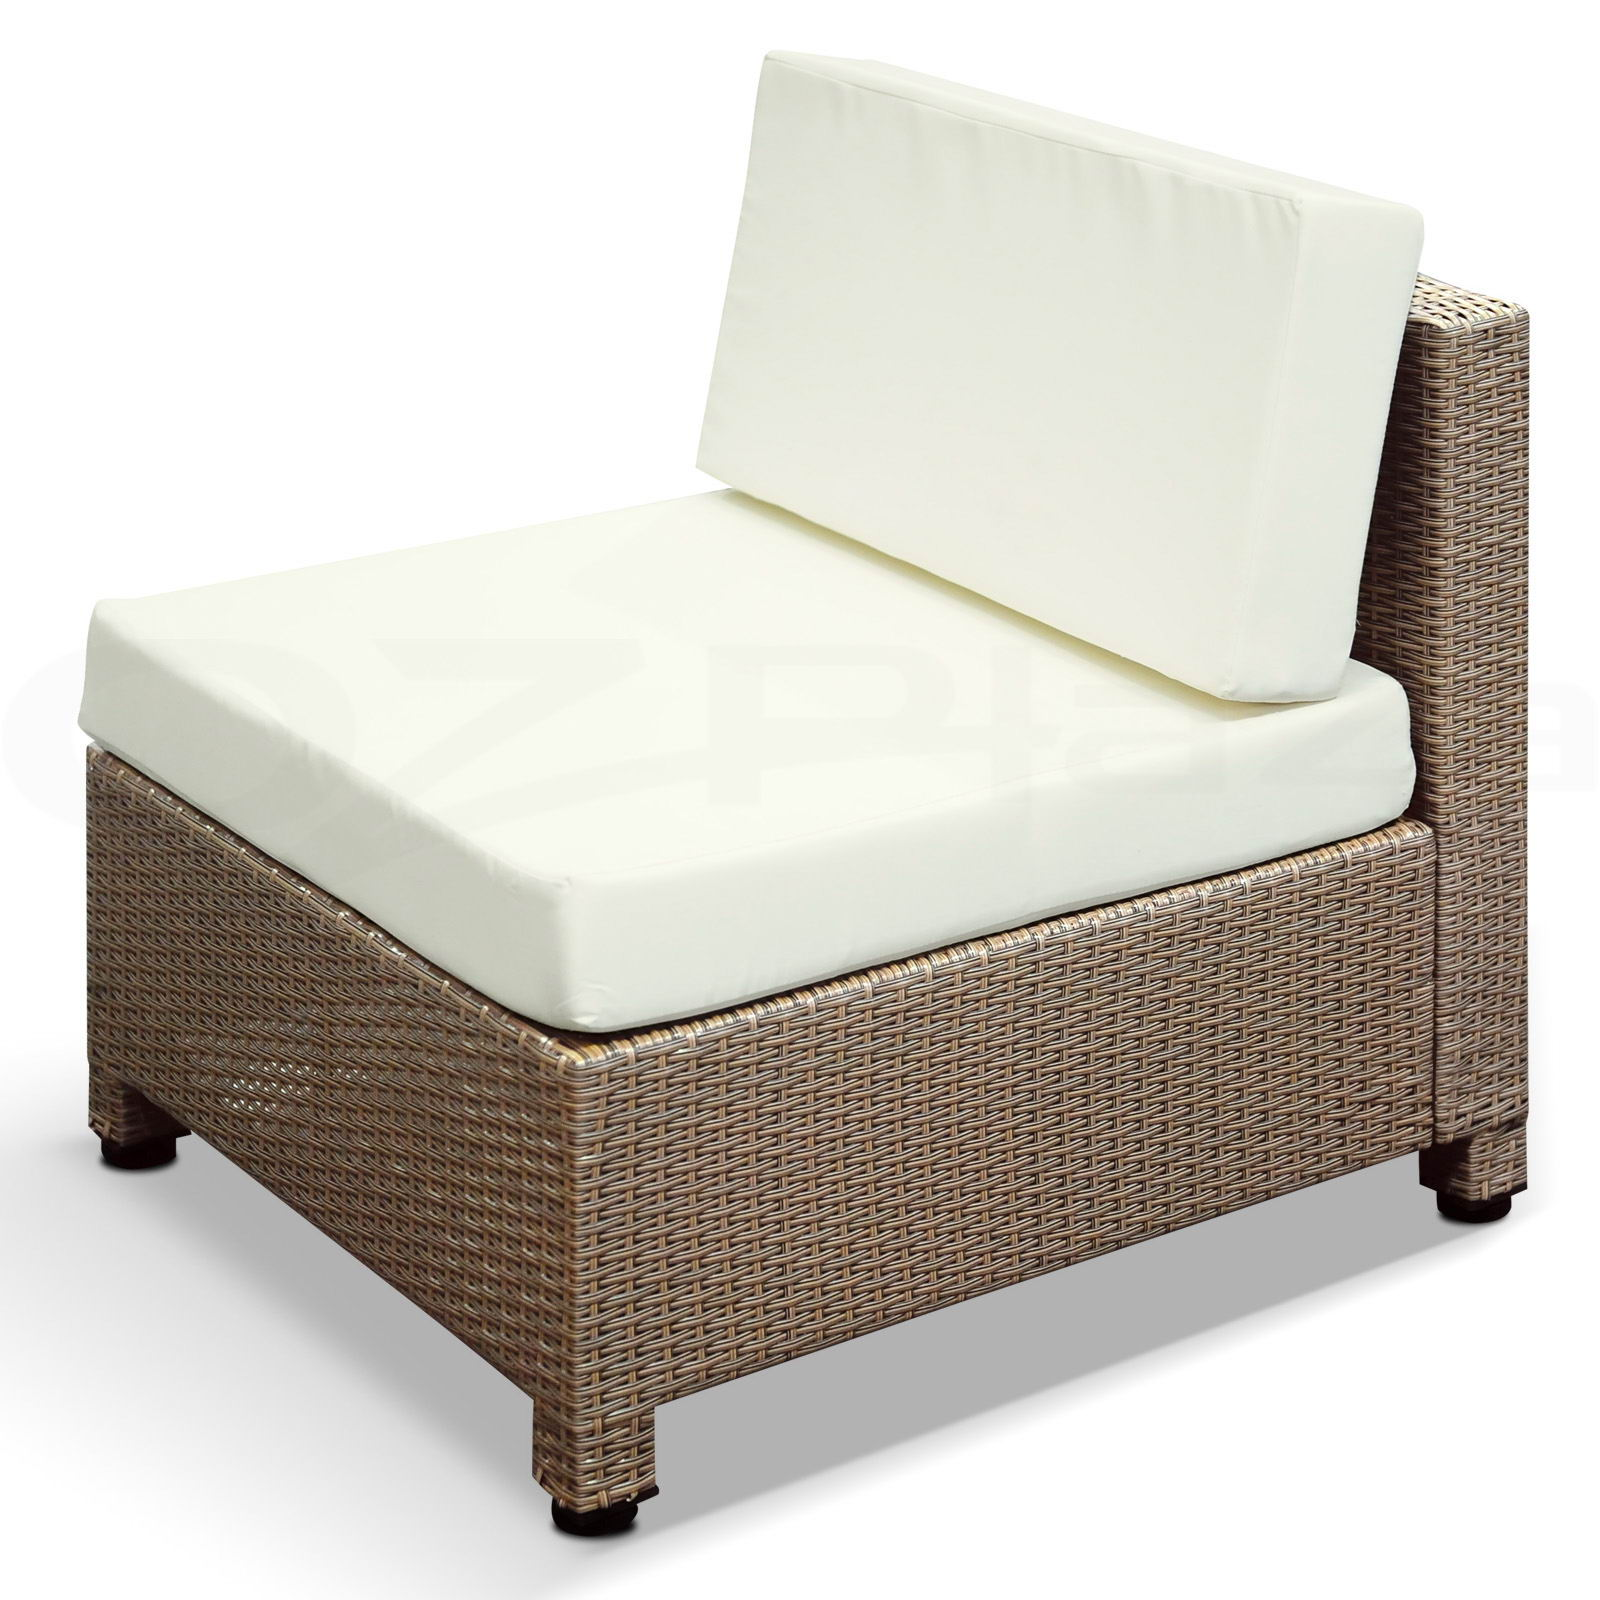 Free Shipping On Furniture